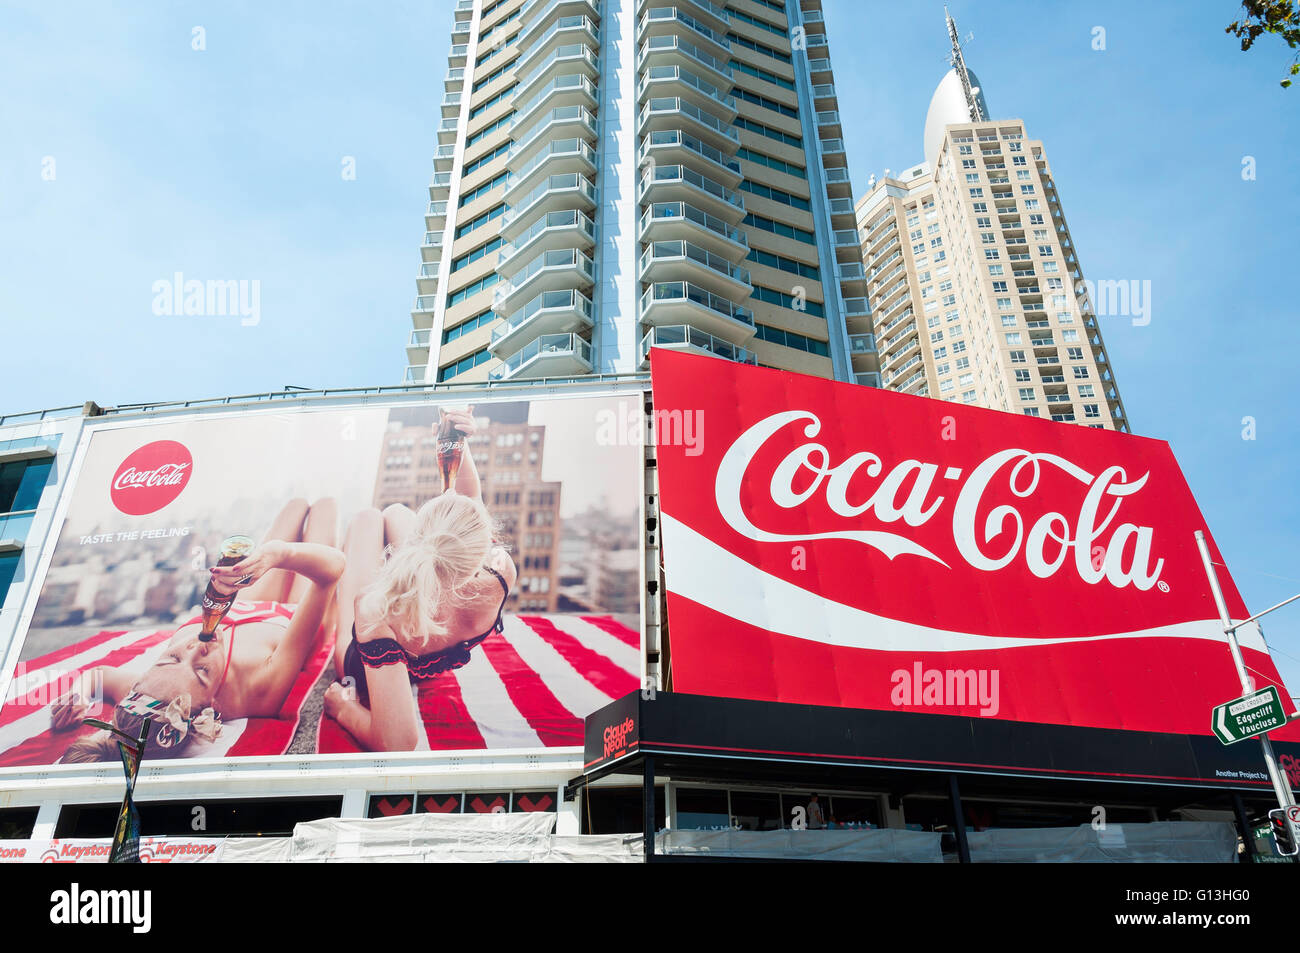 Coca Cola Billboards and high-rise apartments, Darlinghurst Road, Kings Cross, Sydney, New South Wales, Australia - Stock Image